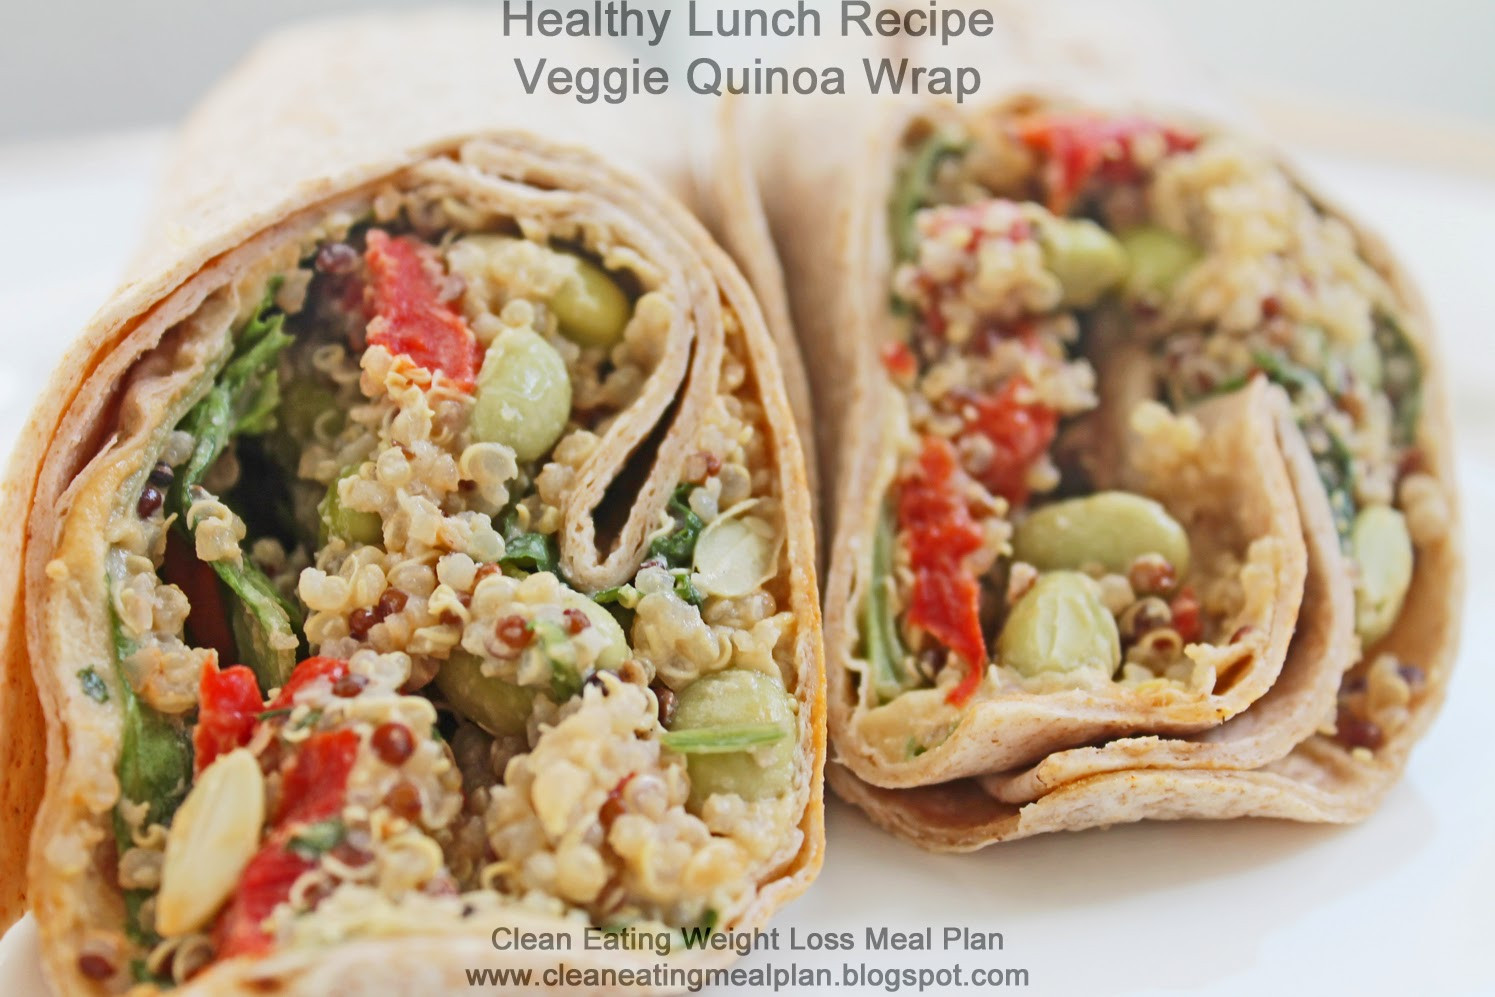 Healthy Lunch Recipes For Weight Loss  Best Diet Plans Healthy Lunch Recipe for Weight Loss Meal